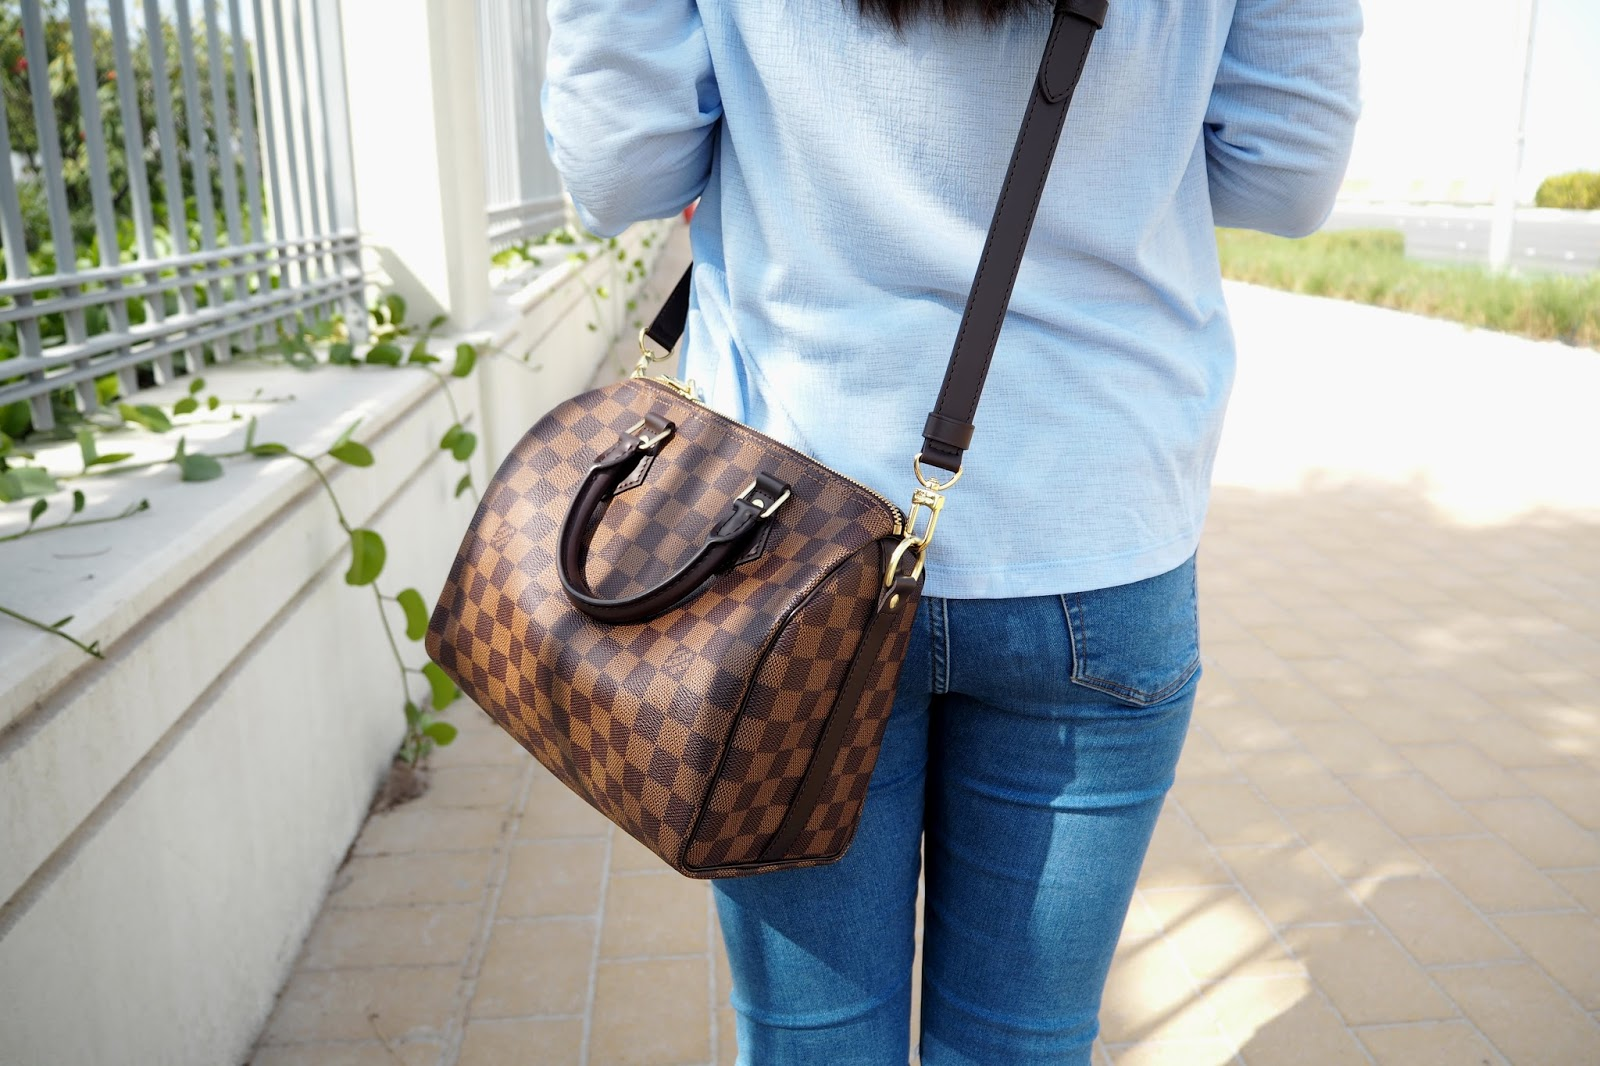 Lv Speedy B 30 Review Confederated Tribes Of The Umatilla Indian